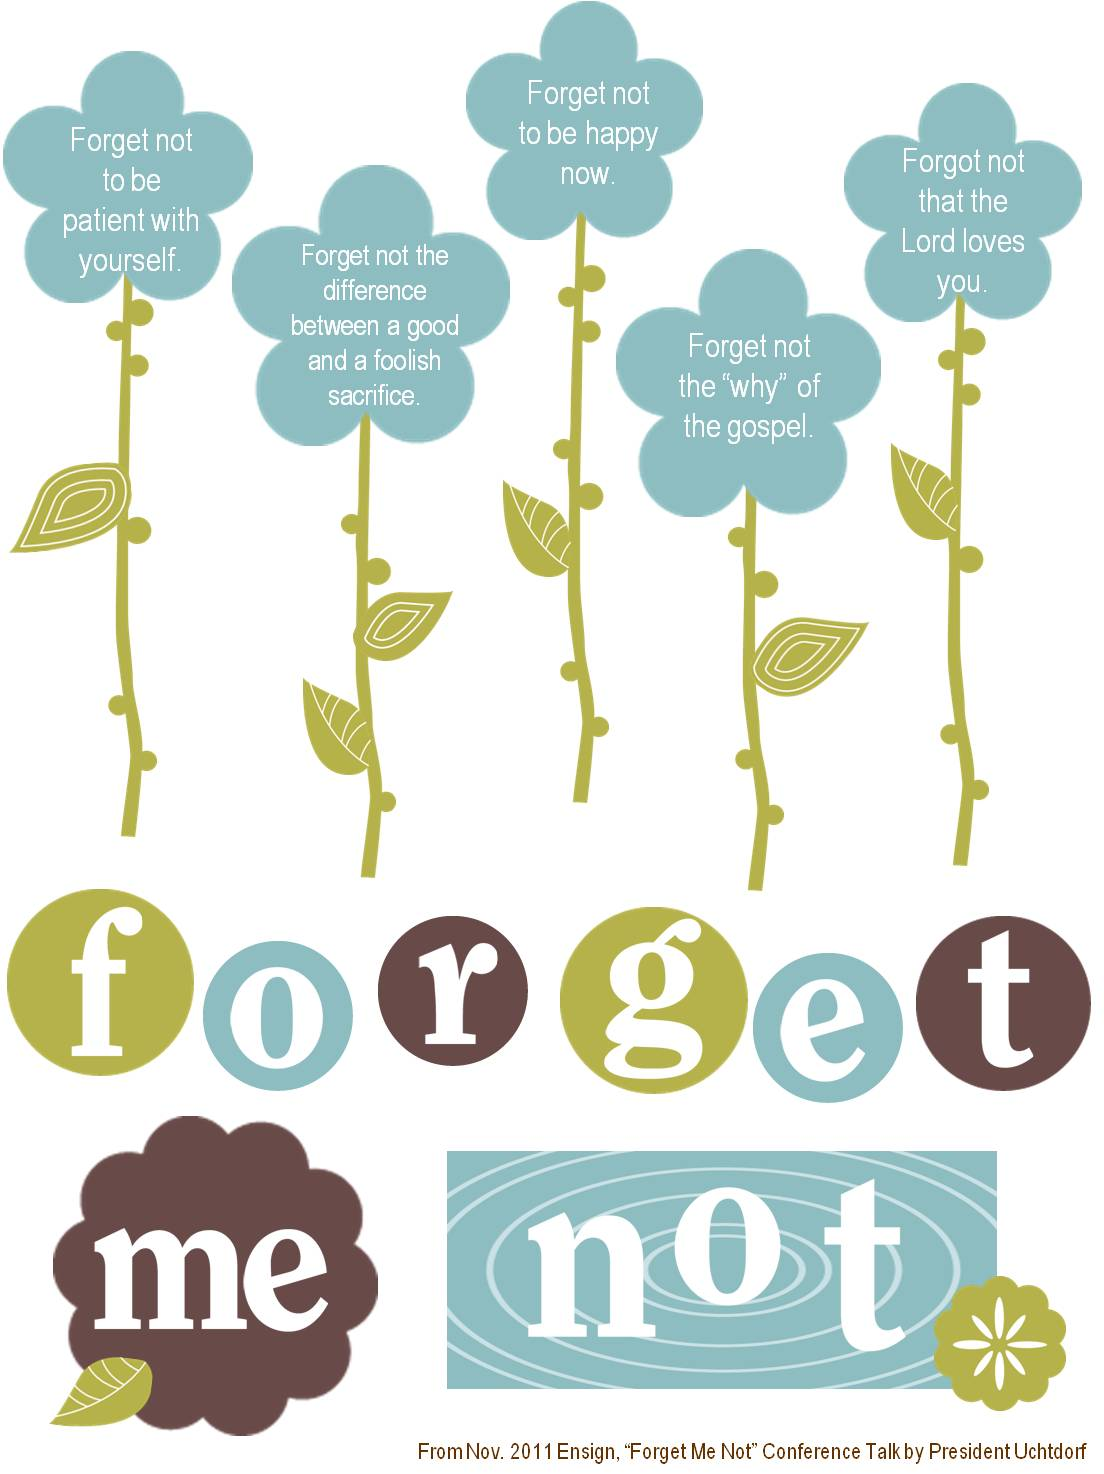 Forget-me-not - Photo Actress